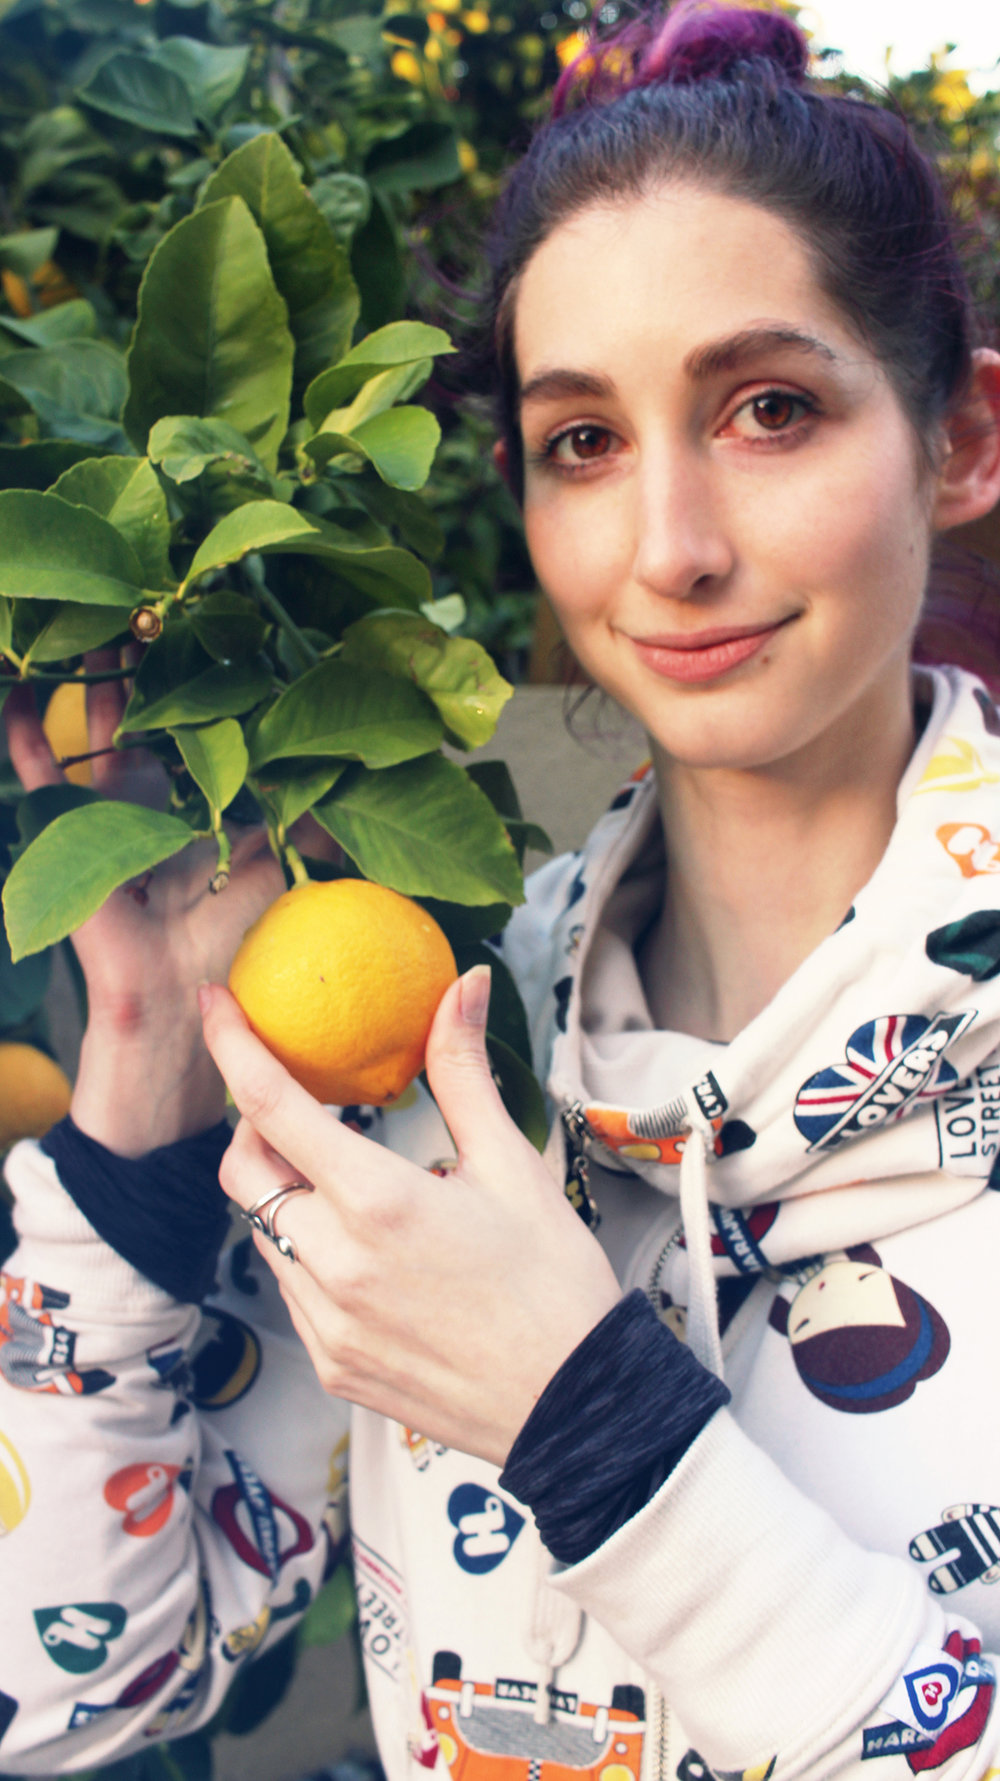 Geena fondles an orange in the backyard of Nir's family home in Hadera, celebrating the second night of Hanukkah with Shorashim Israel, 2016.